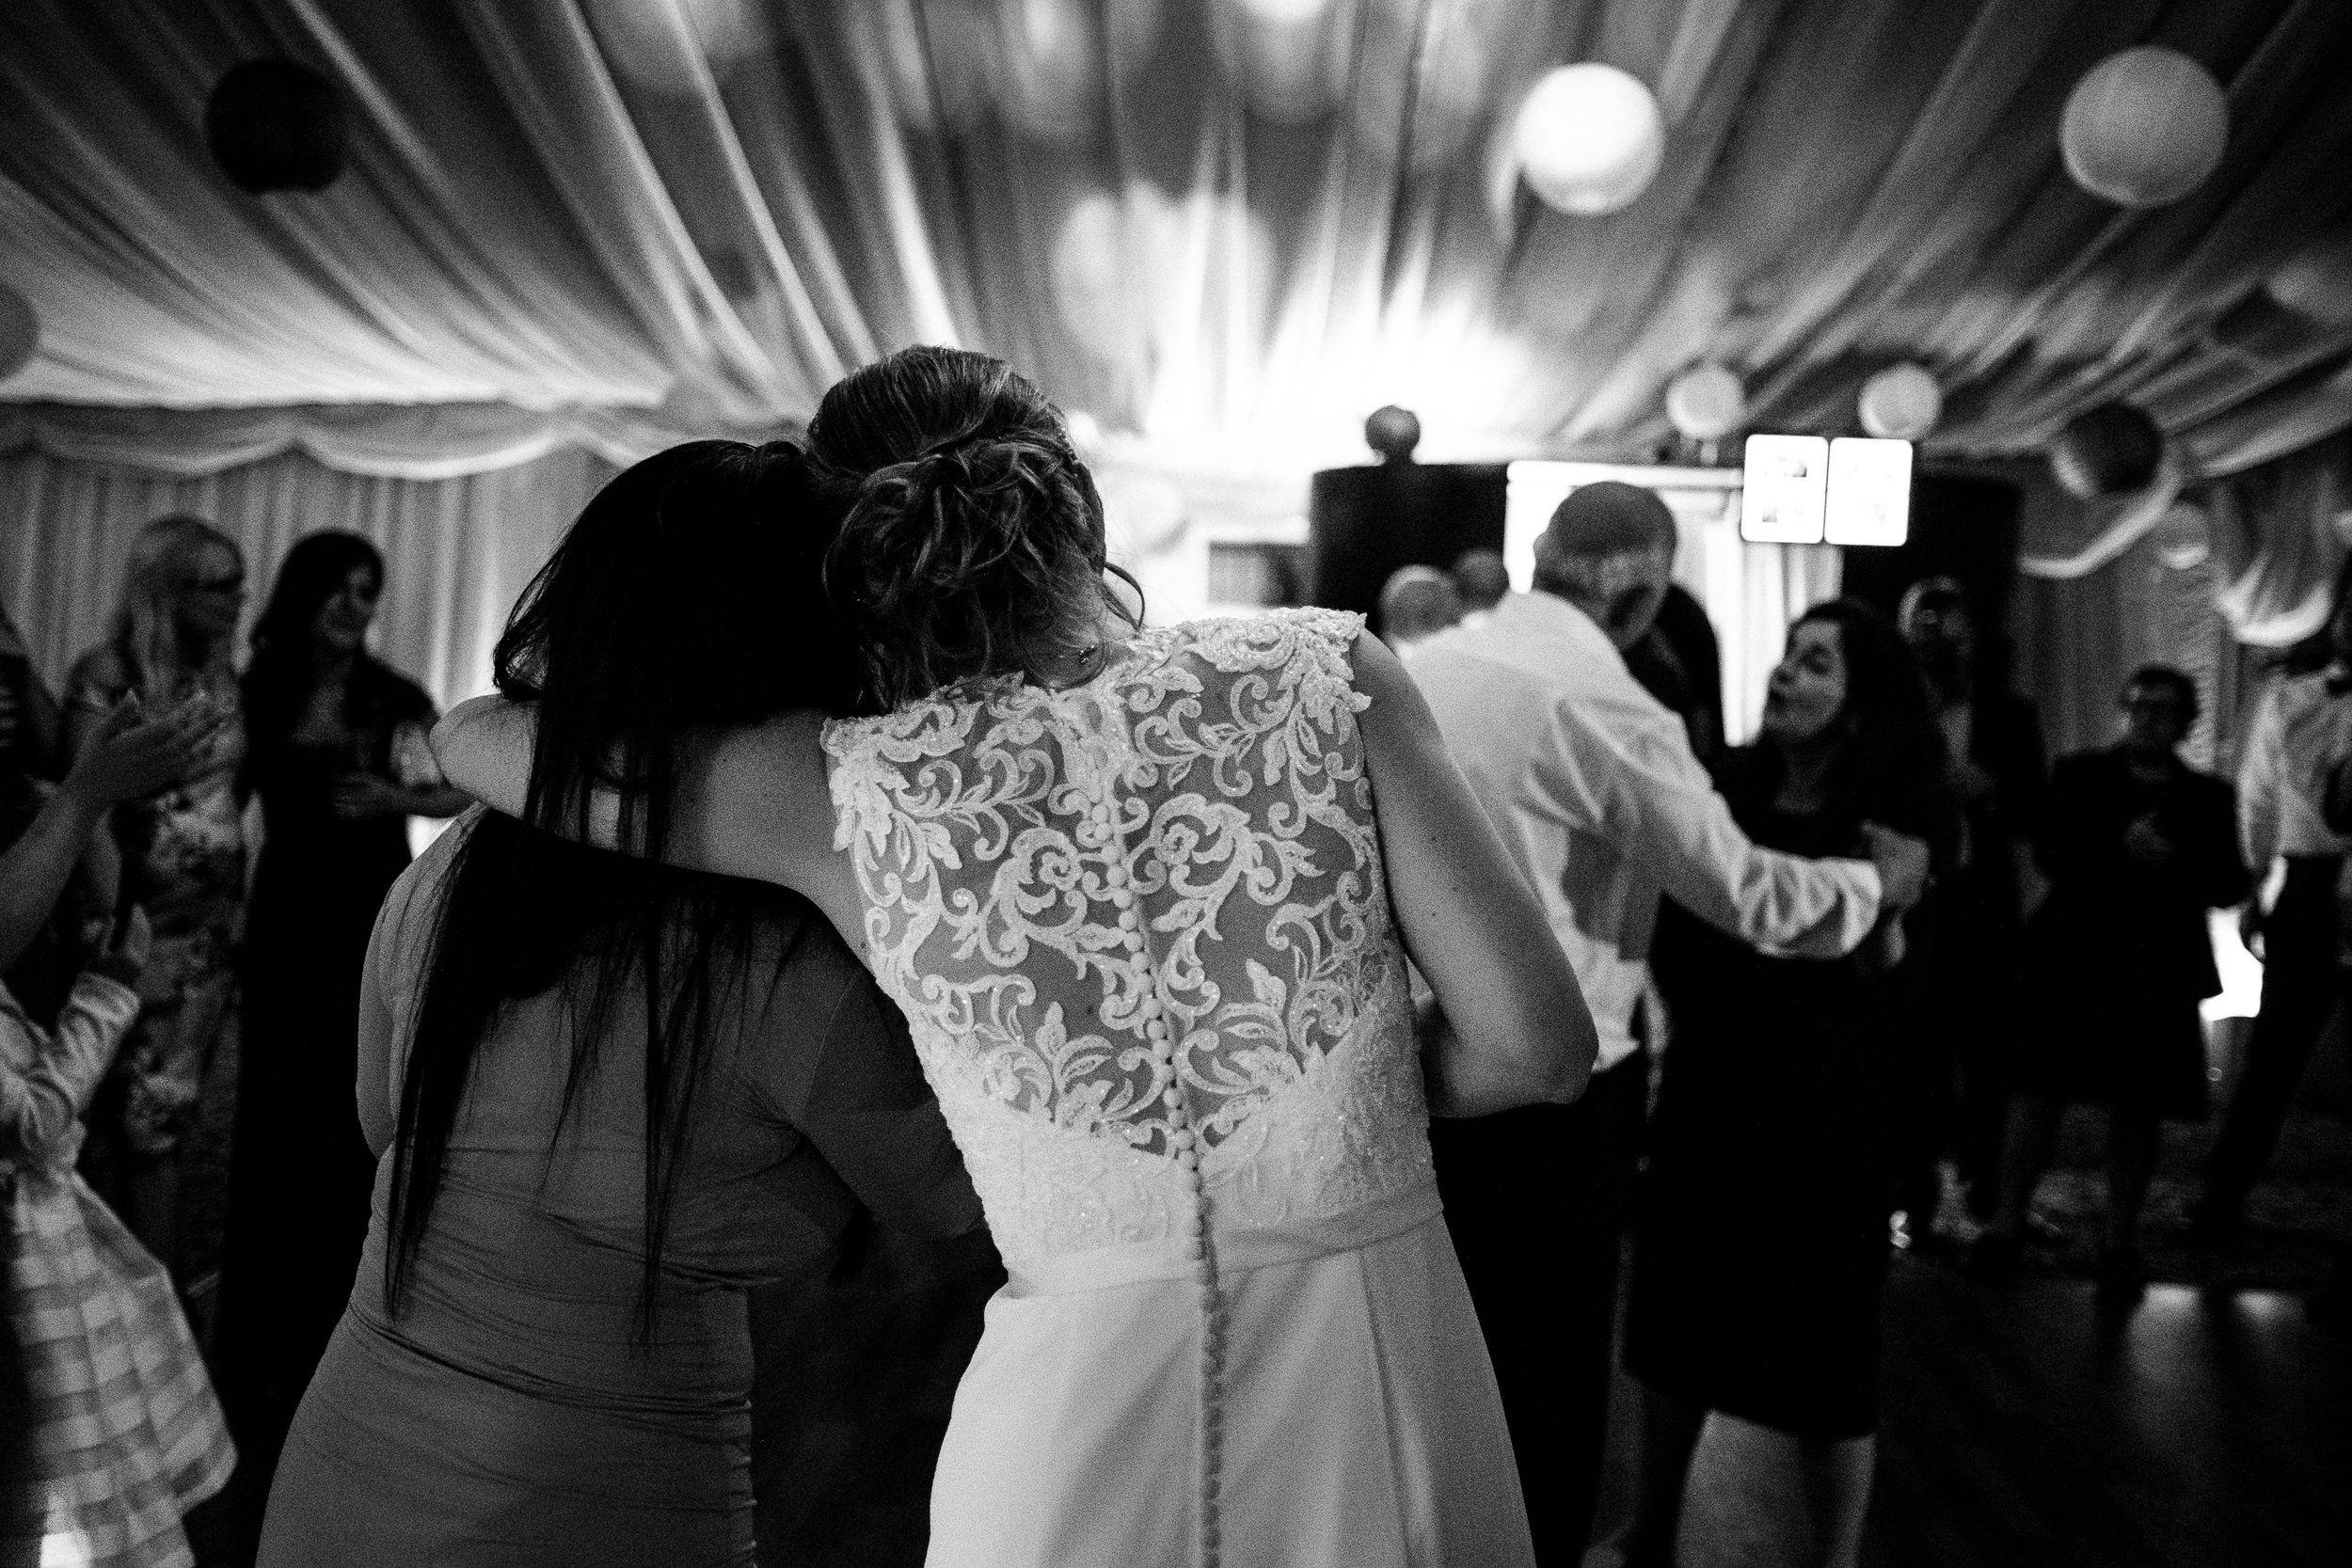 Birmingham Documentary Wedding Photography at New Hall, Sutton Coldfield Turkish Red Candid Reportage - Jenny Harper-81.jpg